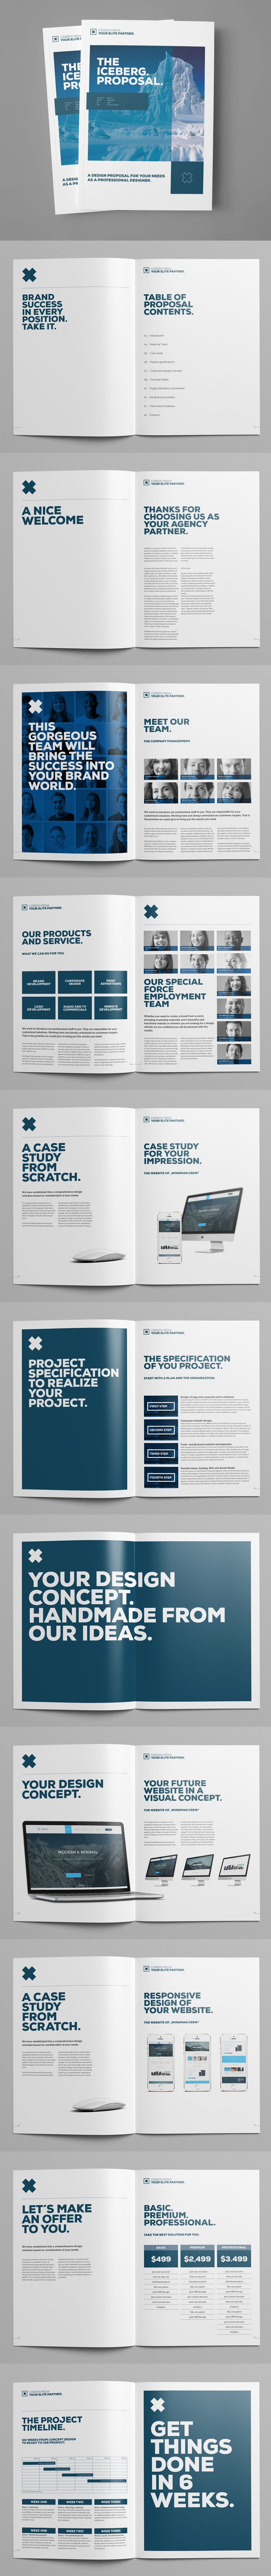 Minimal Proposal Brochure Template INDD, PSD - 28 Custom Pages, A4 and US Letter Size